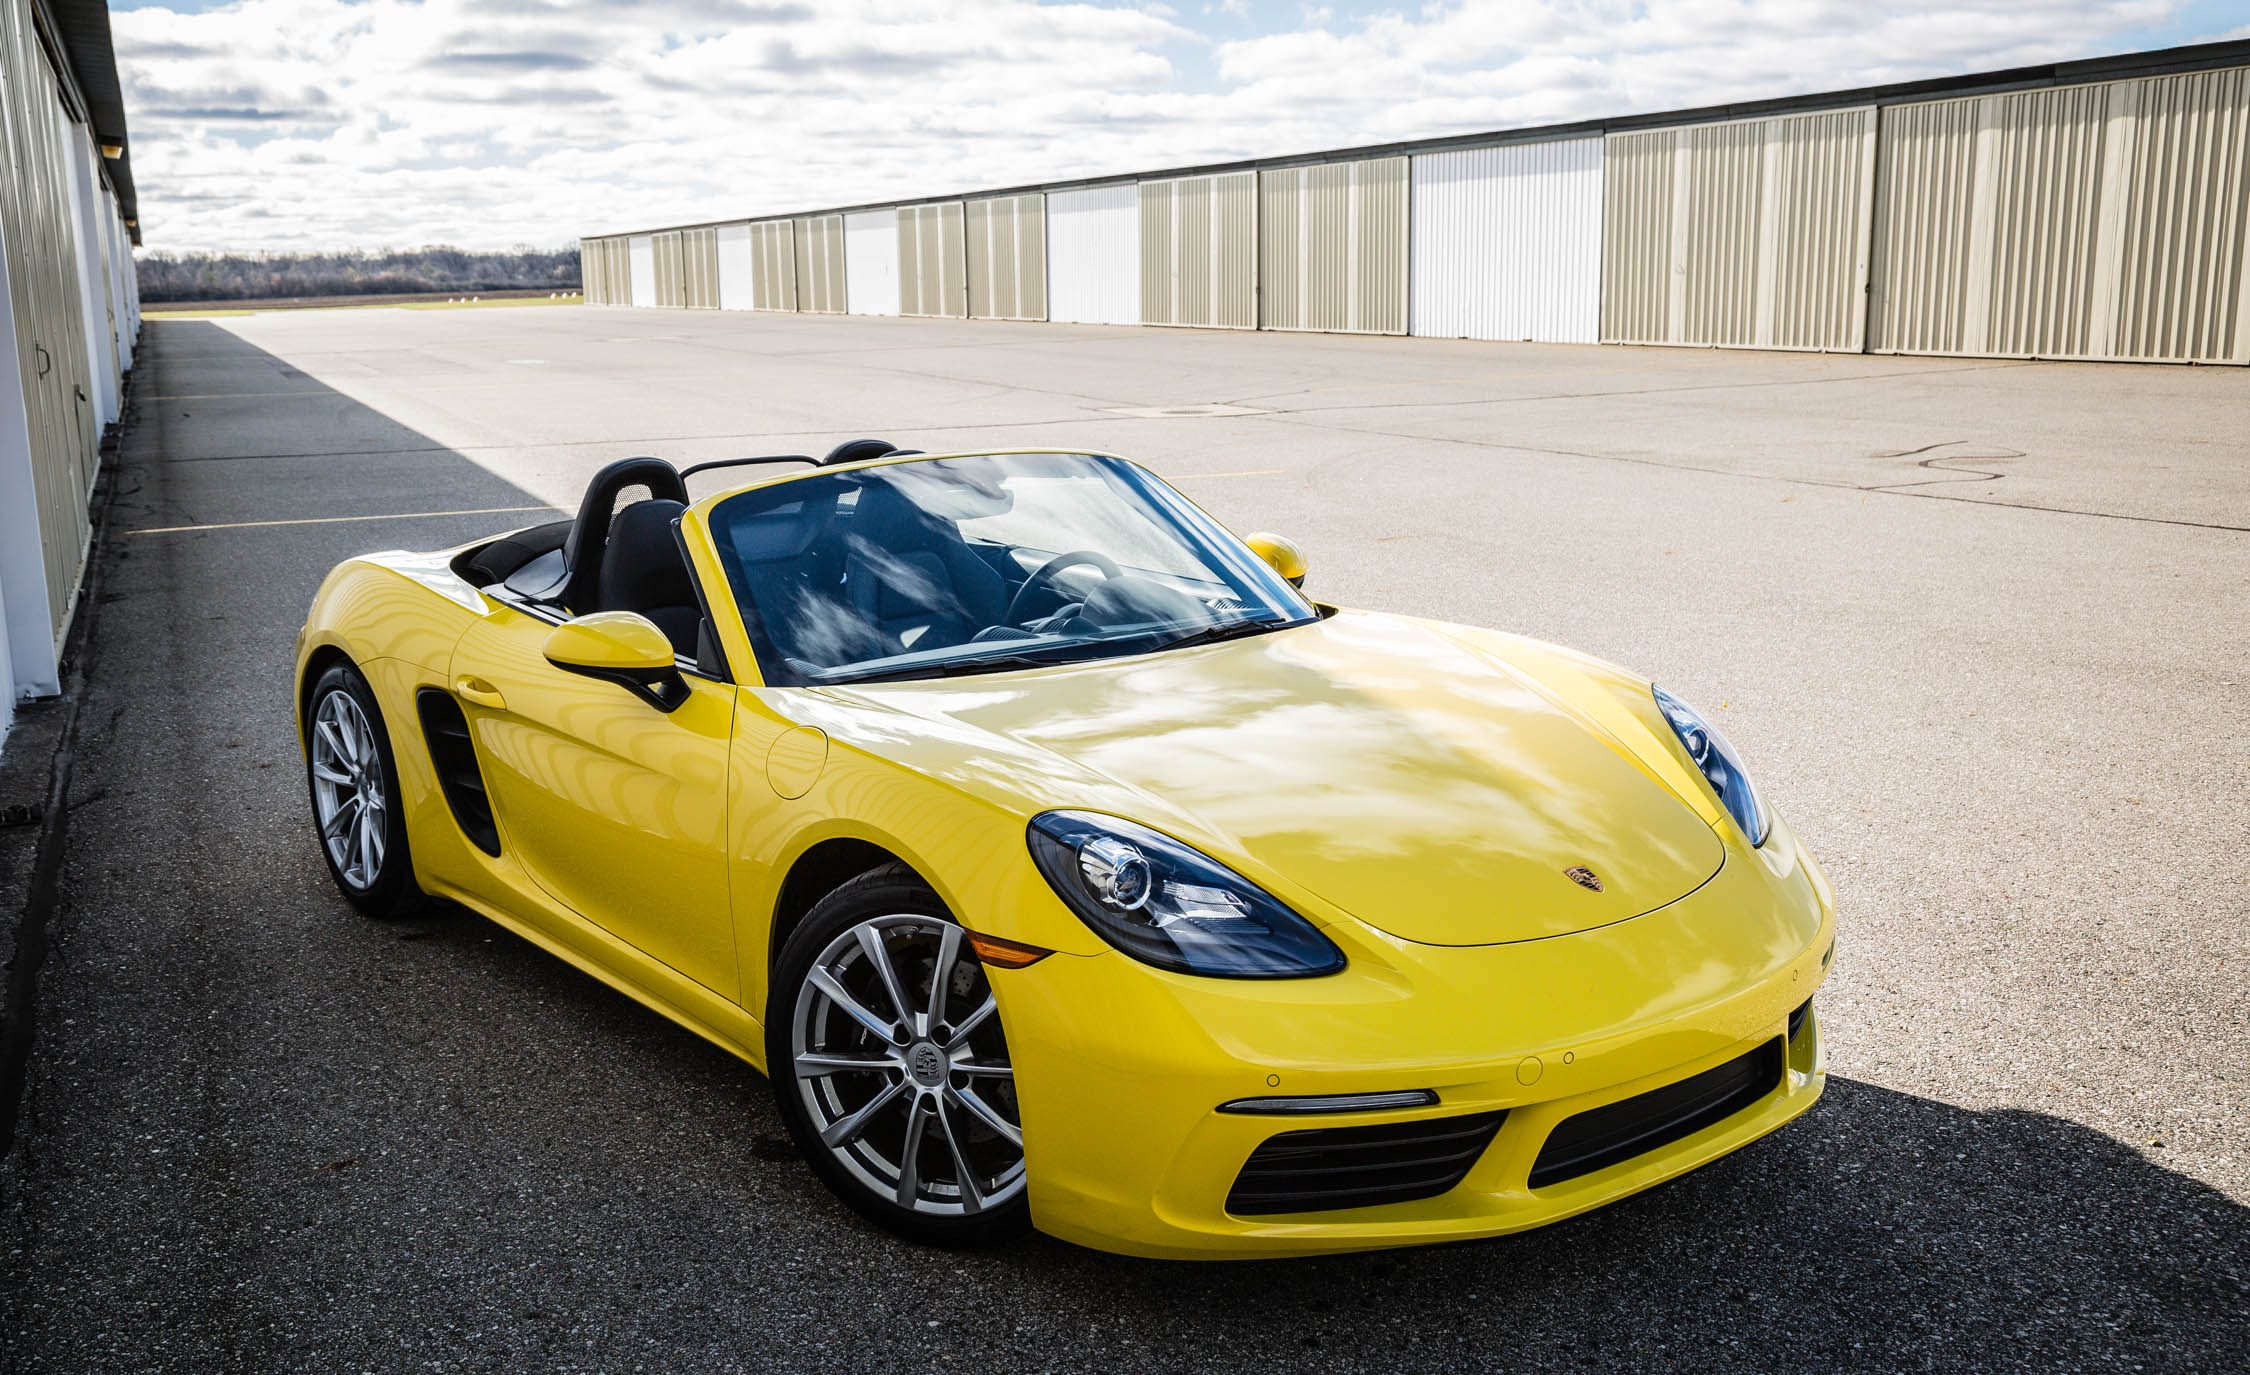 2017 Porsche 718 Boxster Exterior (View 8 of 71)